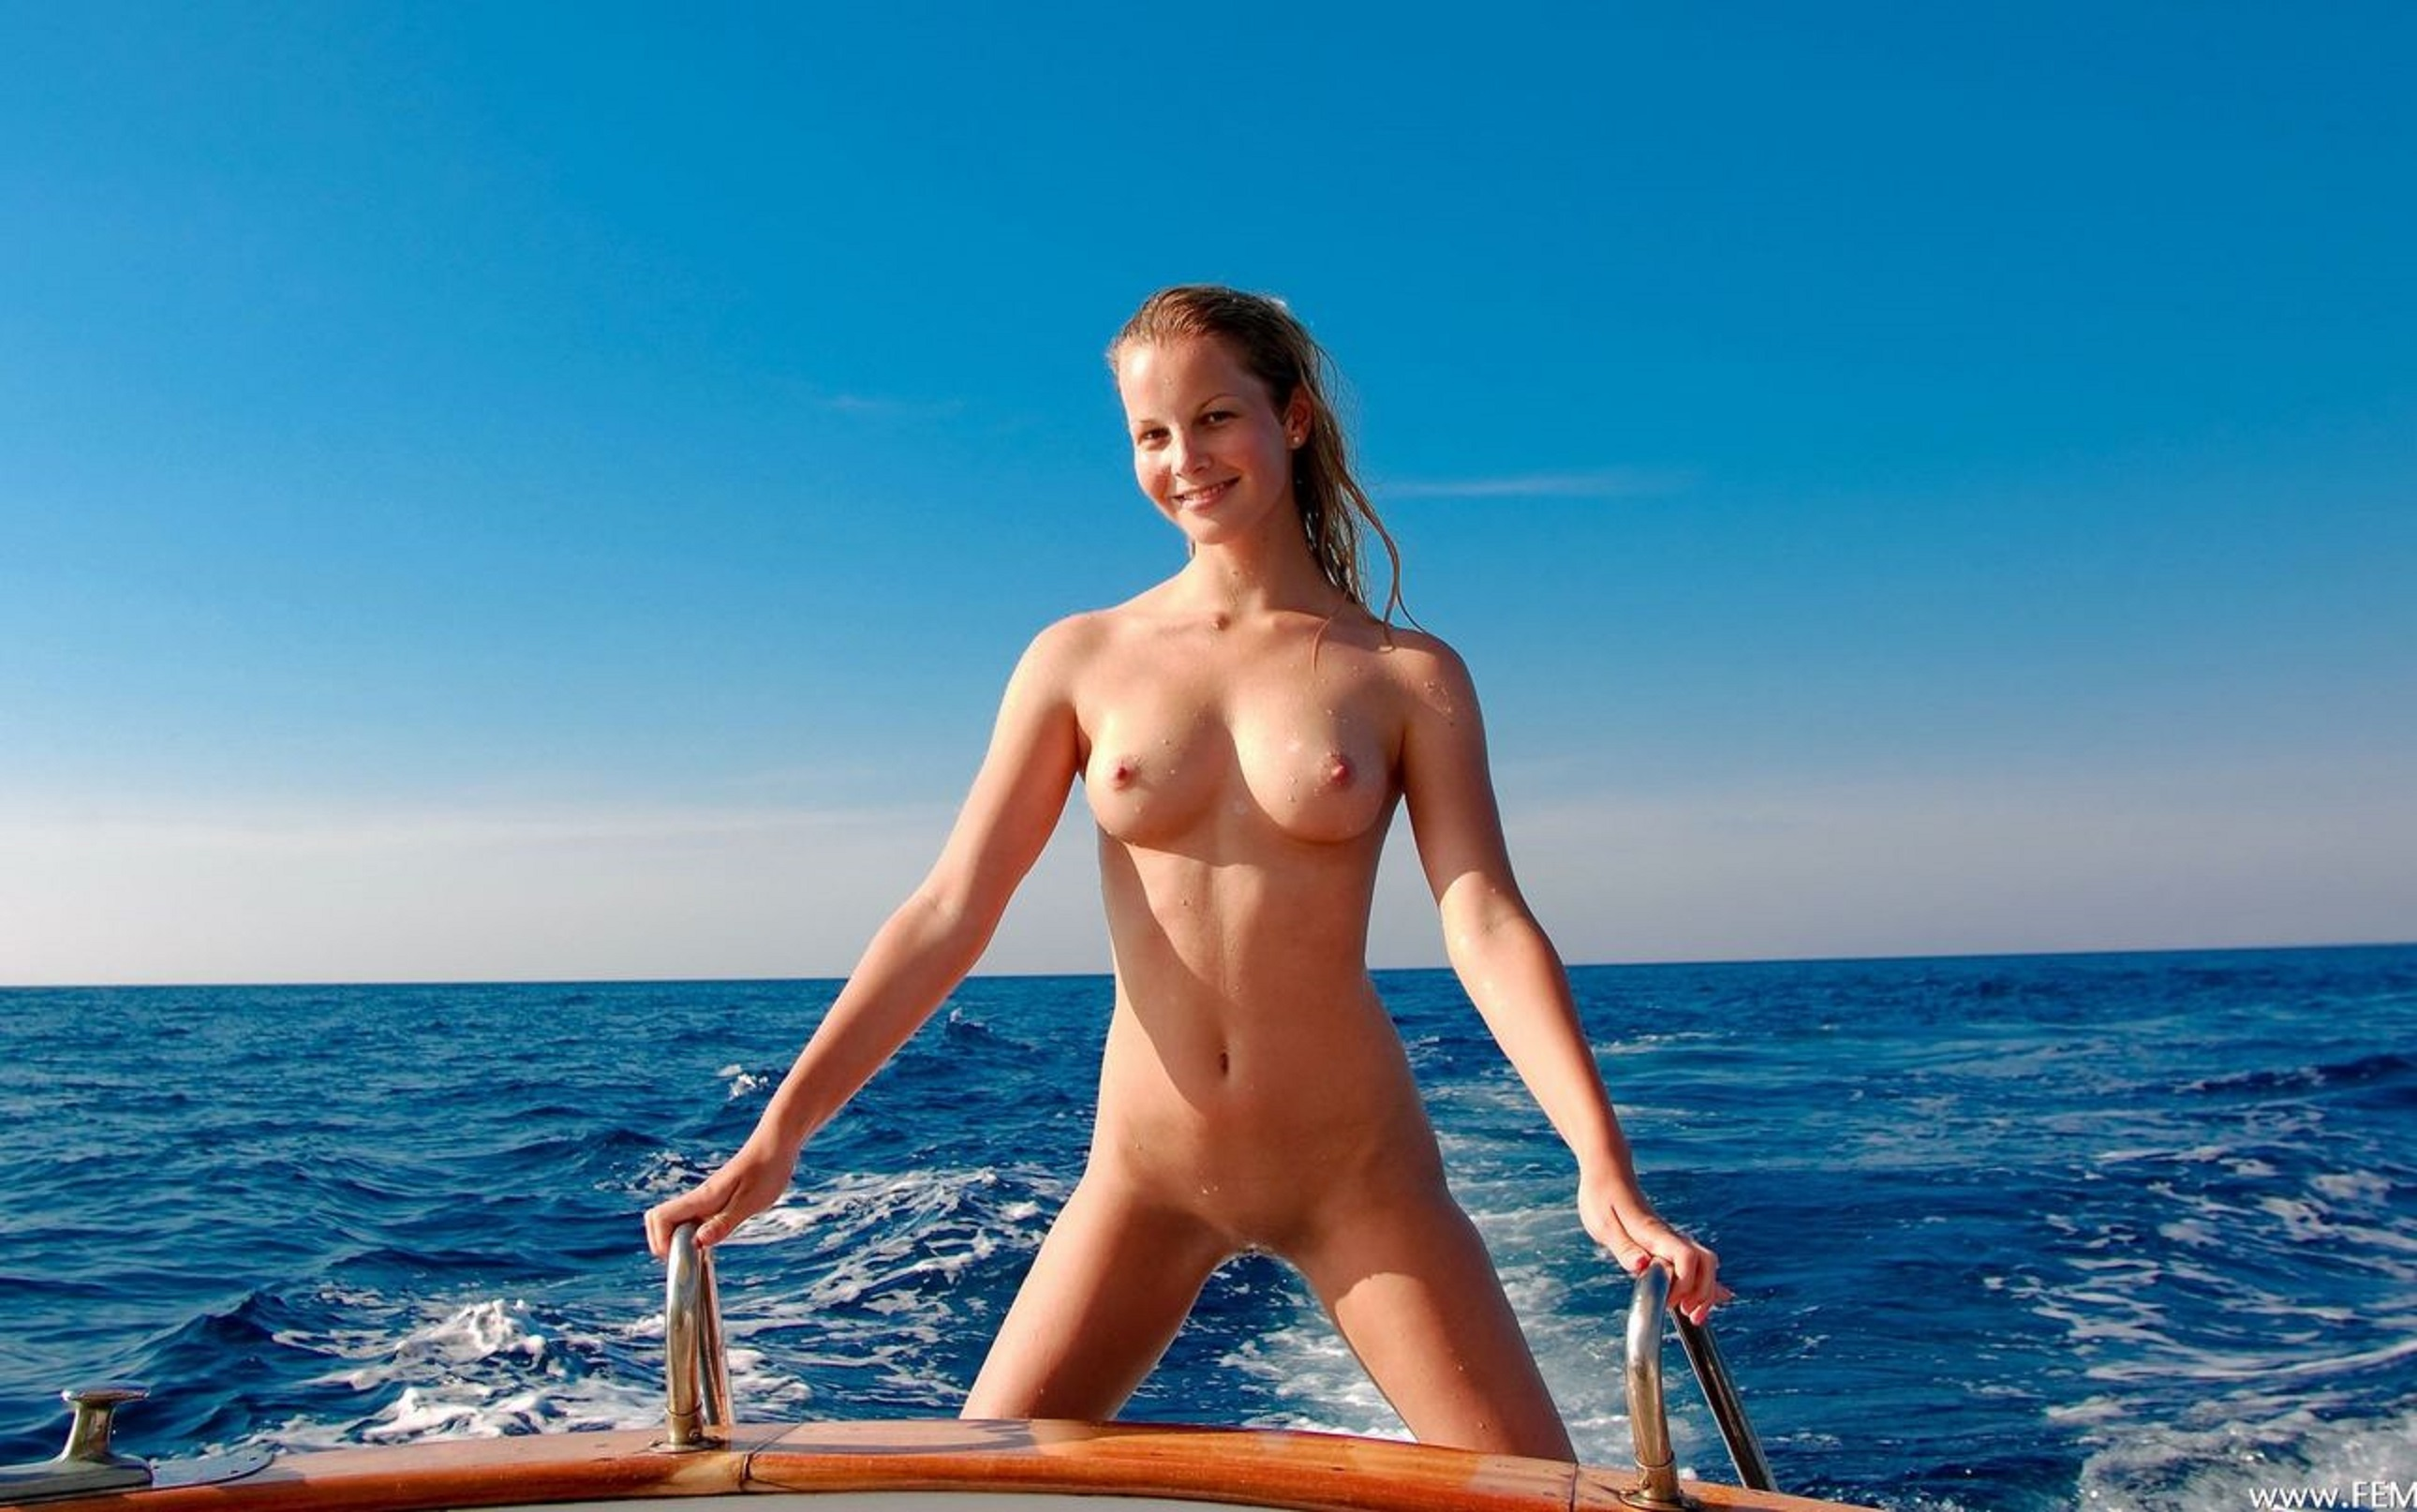 amateur swinging wife shared with two black guys from the internet #outdoor #smile #happy #model #posing #boat #boating #outdoors #nature #slim #blonde #wet #nudist